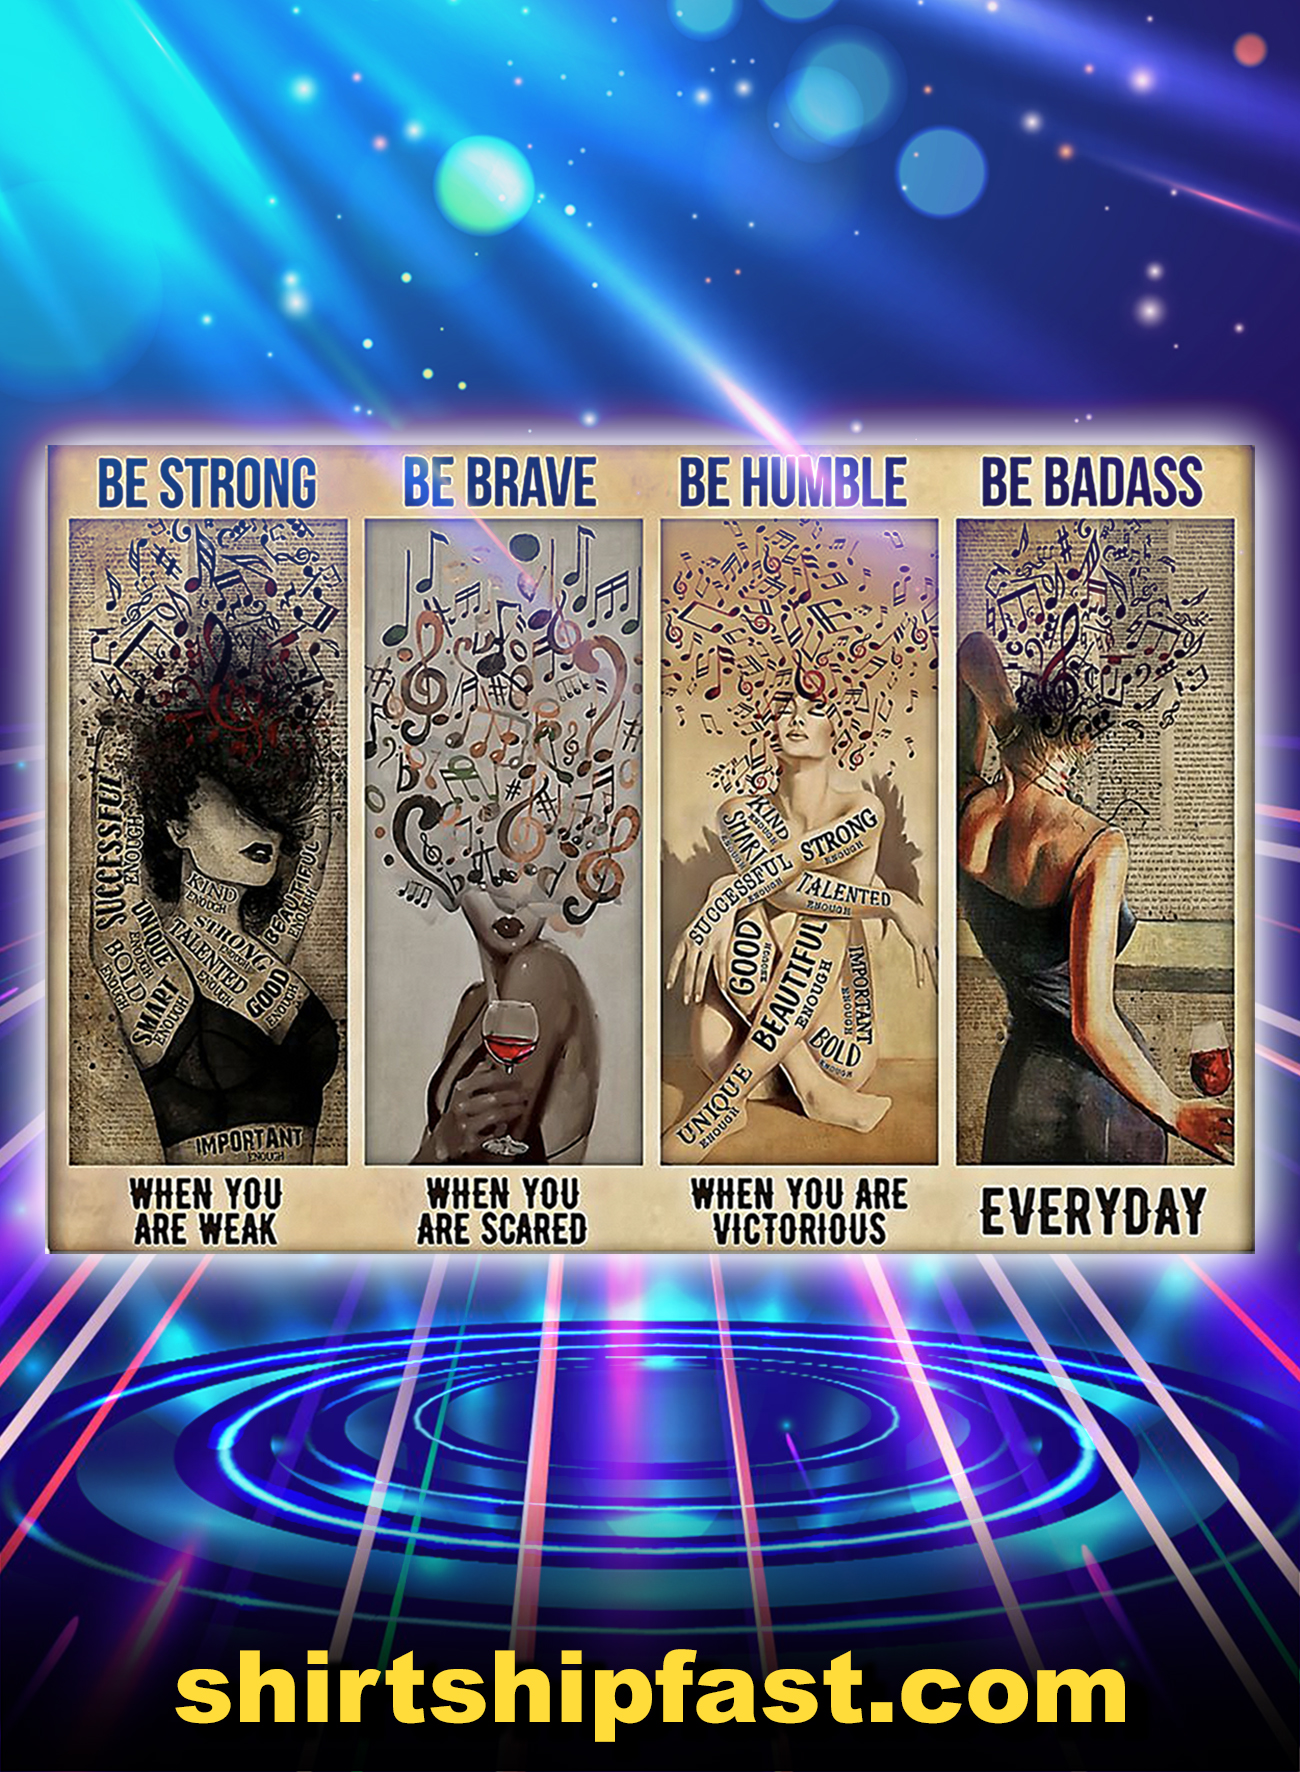 Girl and music be strong be brave poster - A1